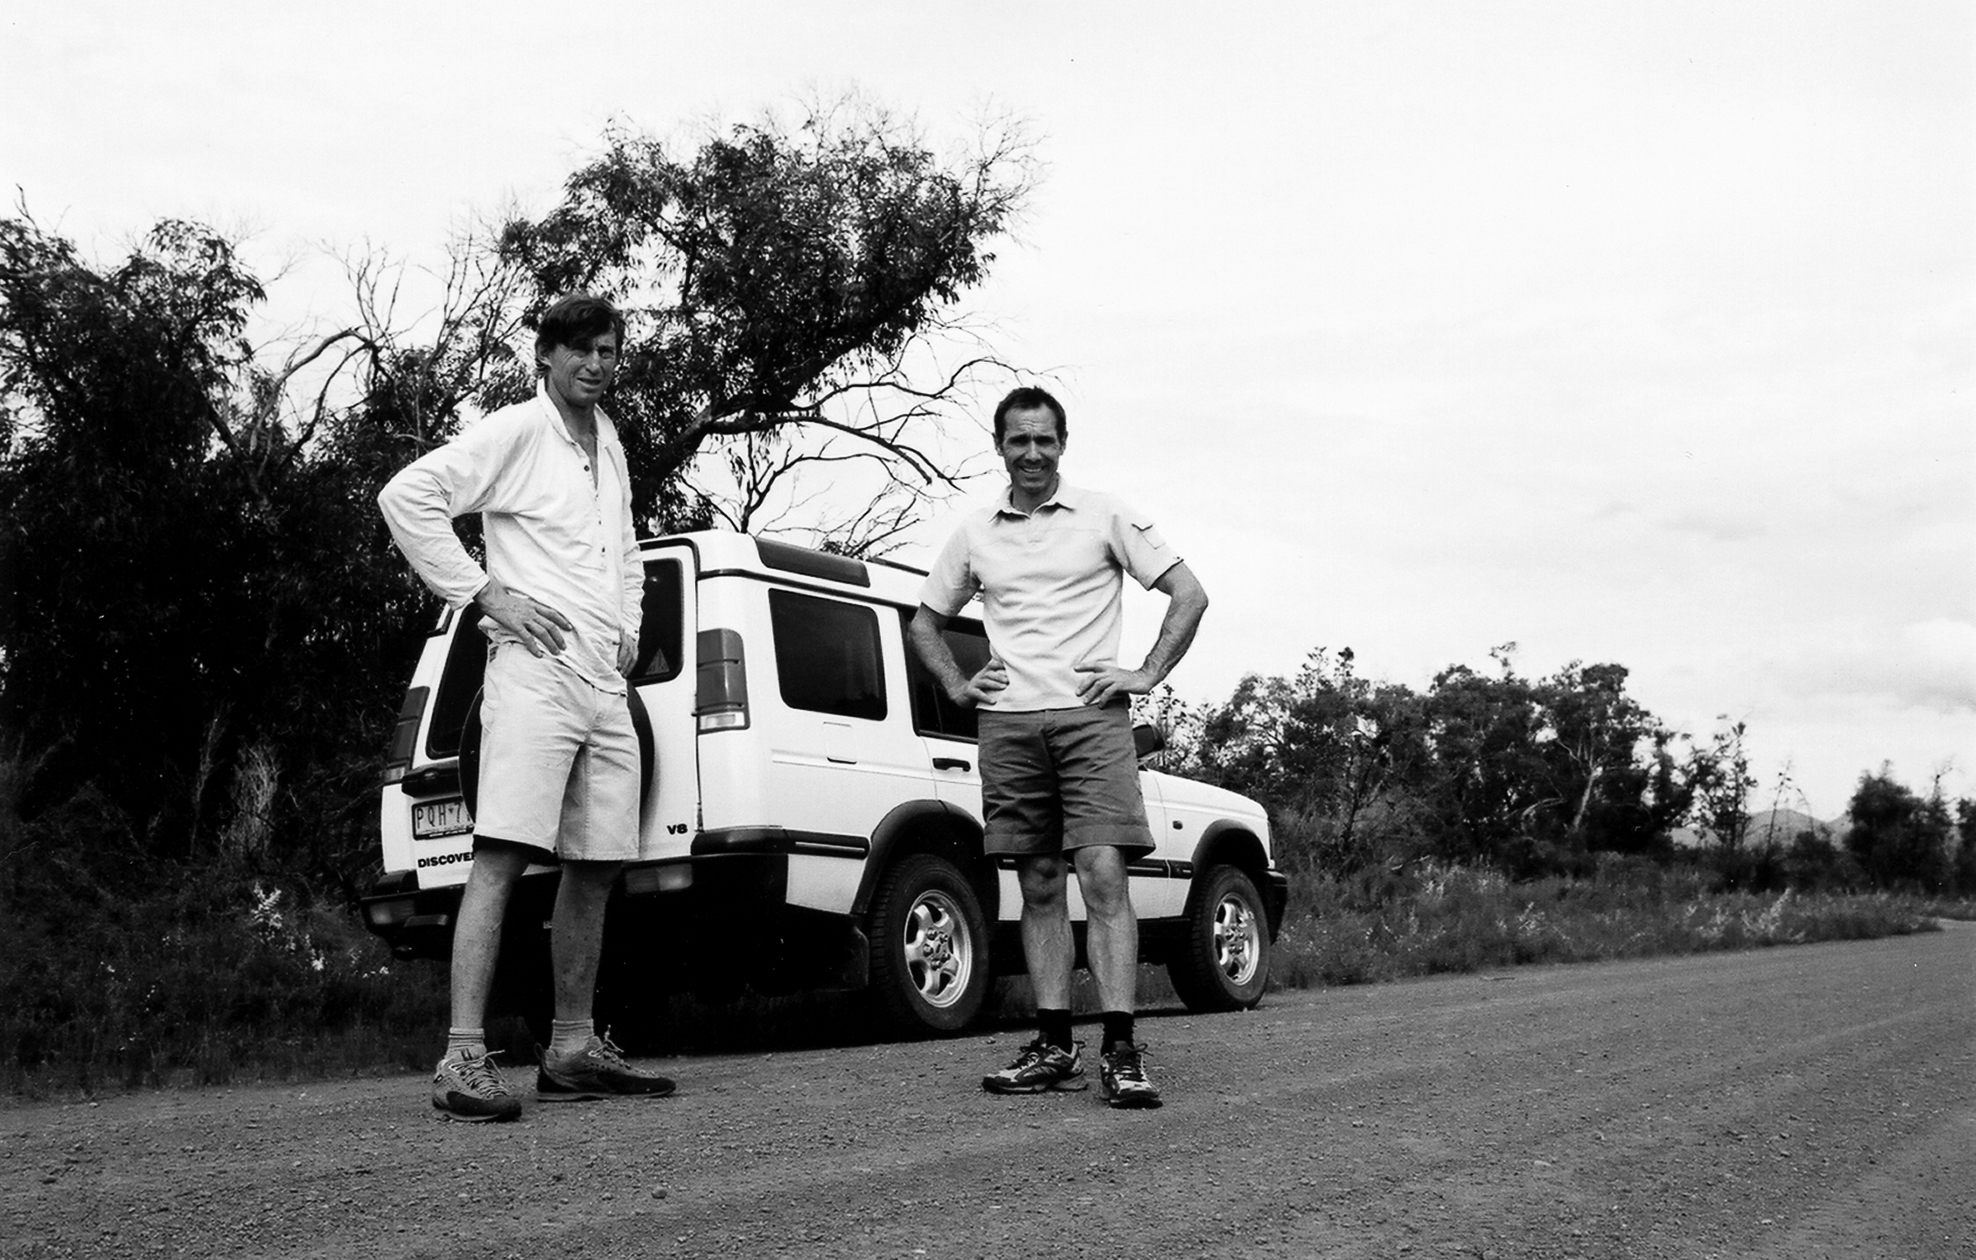 Tim Macartney-Snape and Athol Whimp in the Grampians, Australia, December 2004.